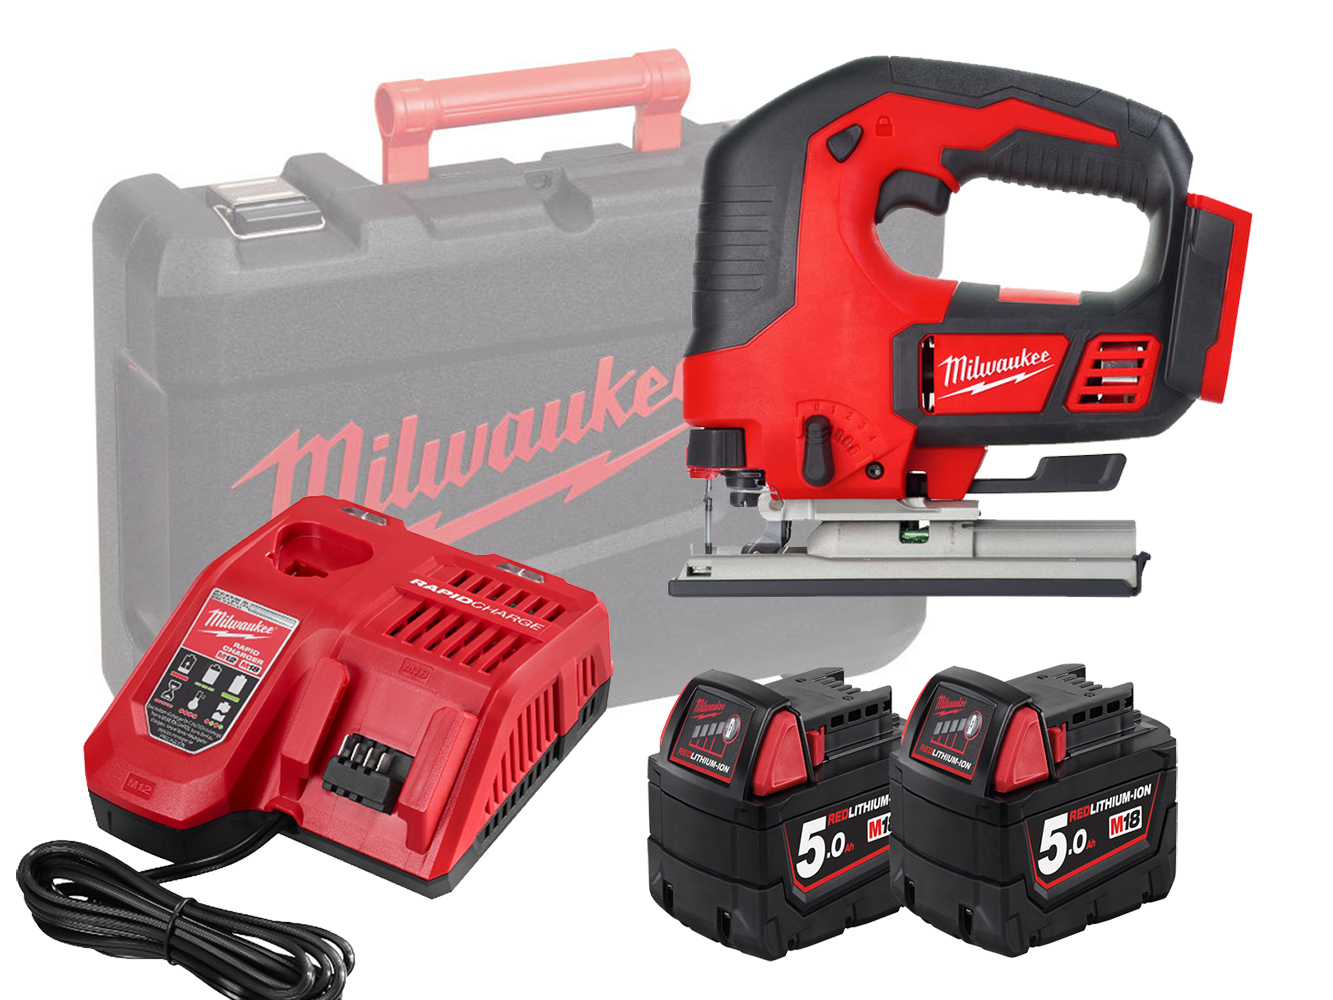 Milwaukee M18BJS 18V Top Handle Jigsaw with 5 Stage Pendulum Action - 5.0ah Pack